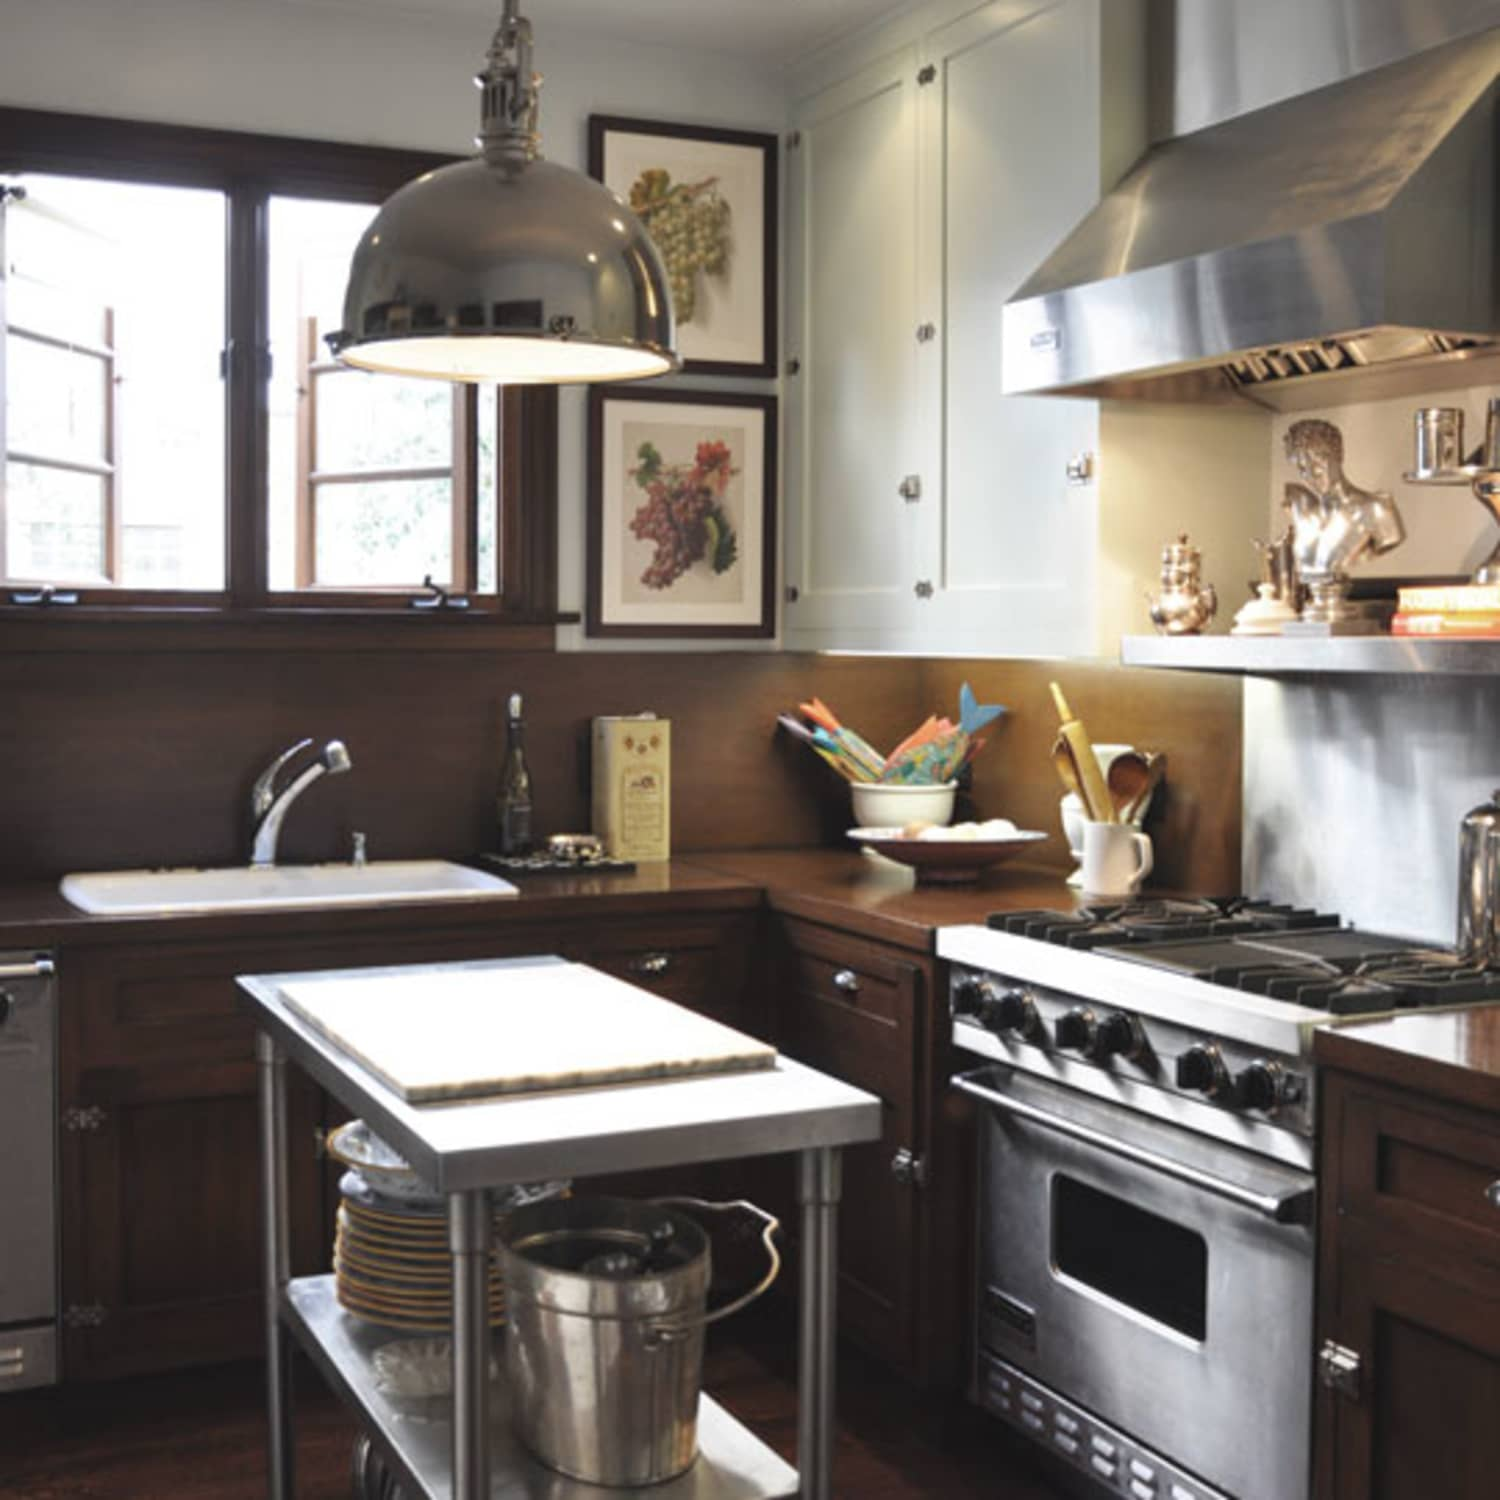 9 Steps To Arranging A Well Organized Kitchen Apartment Therapy